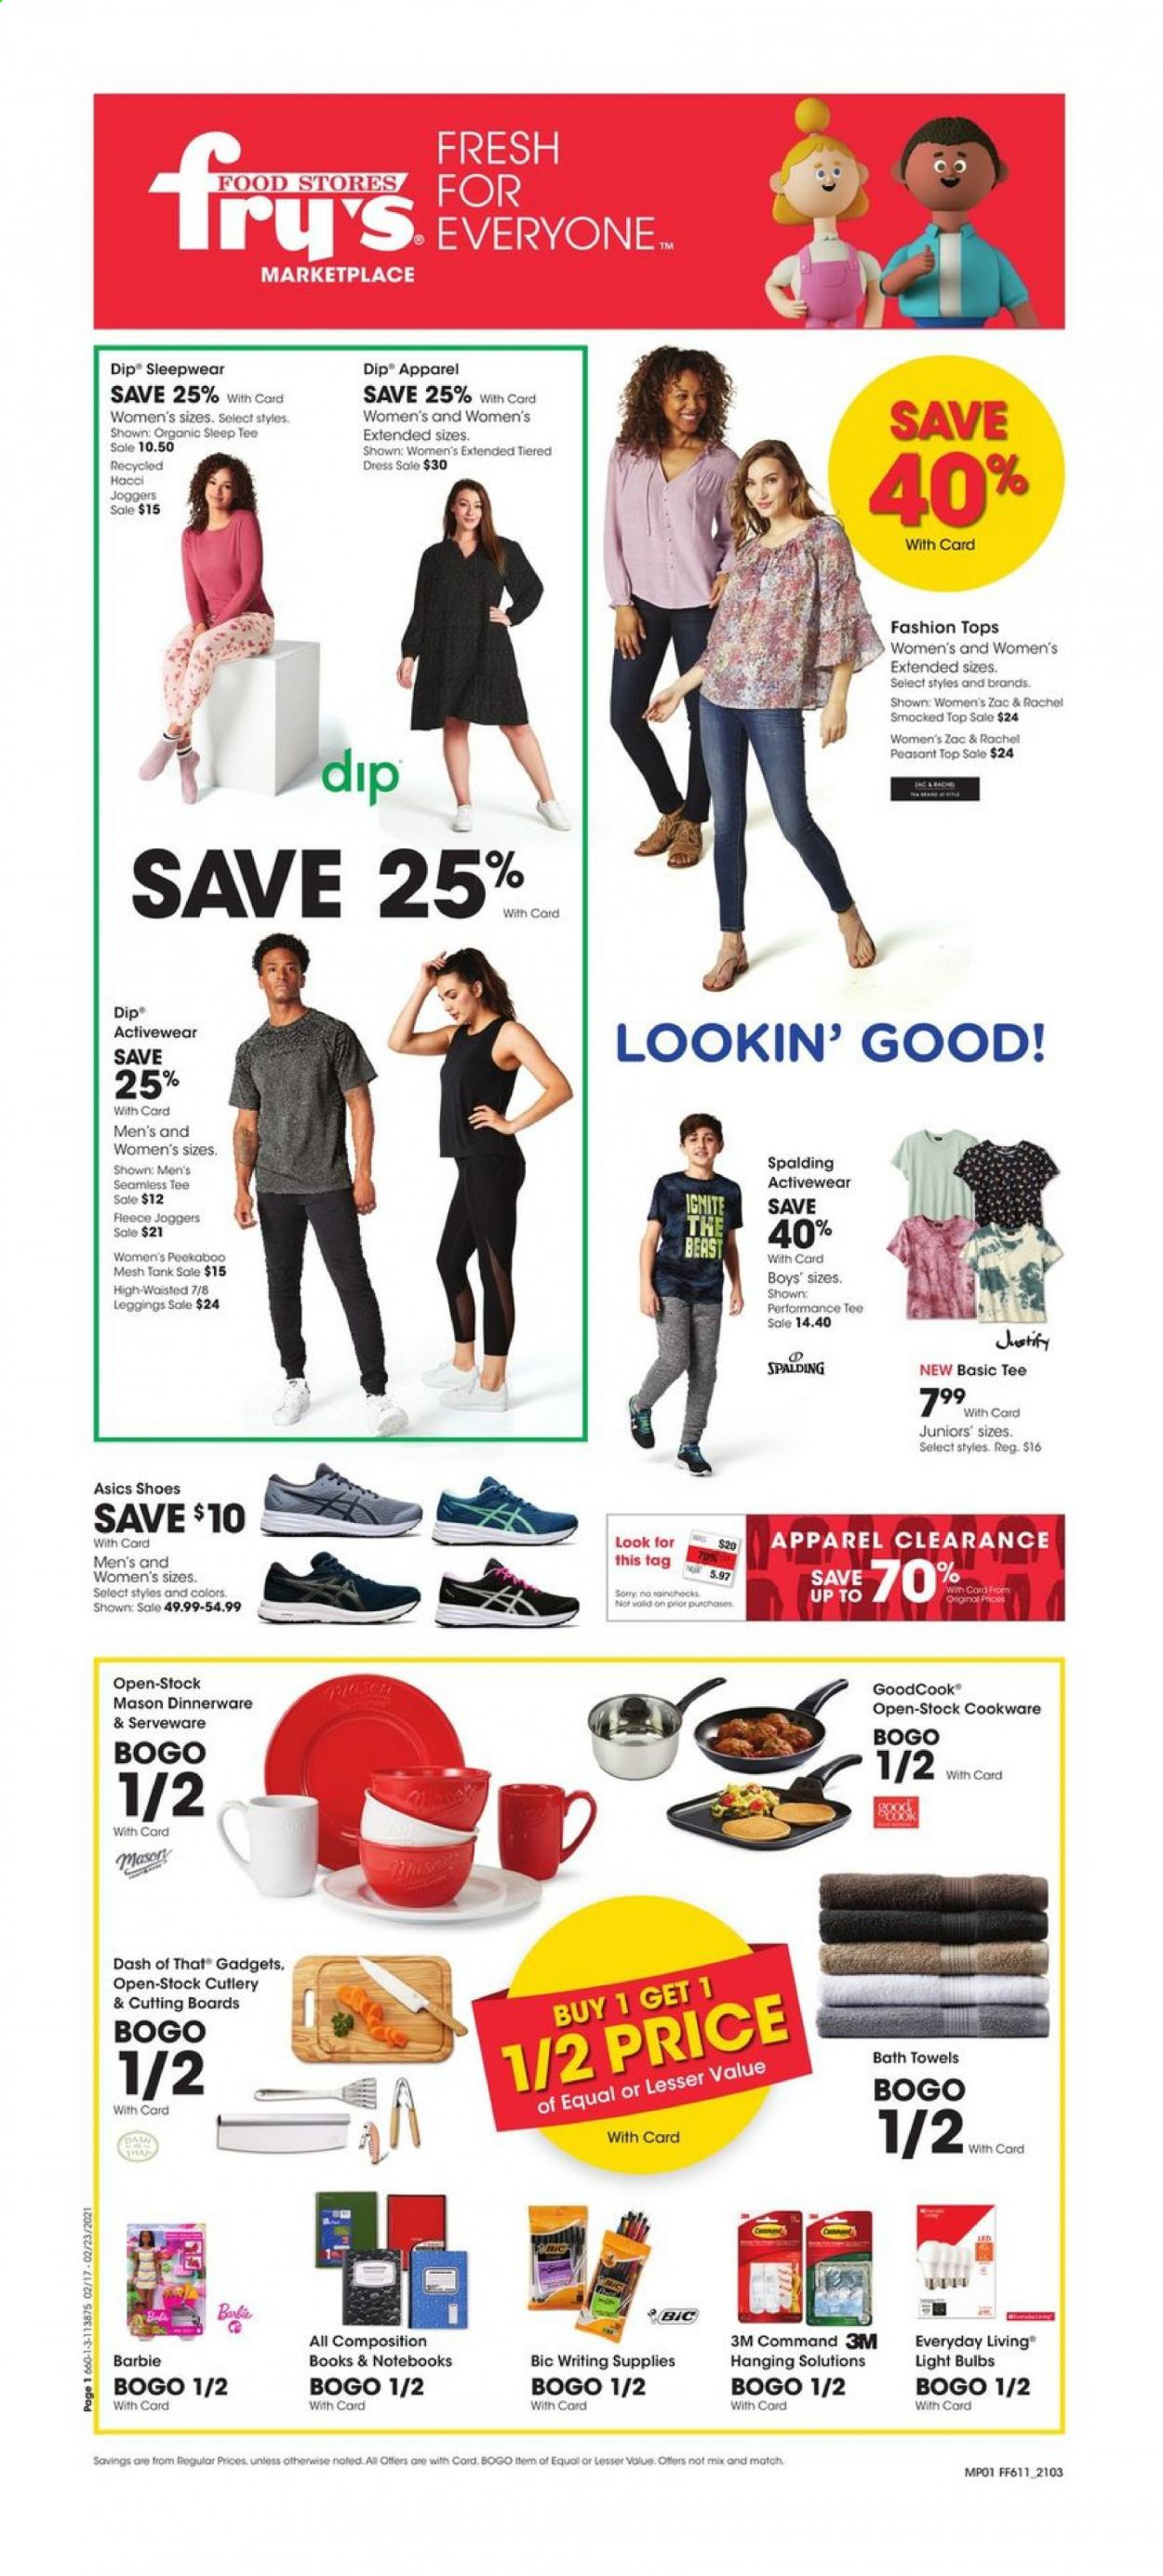 Fry's Flyer - 02.17.2021 - 02.23.2021 - Sales products - dip, BIC, Barbie, cookware set, dinnerware set, serveware, notebook, writing supplies, bulb, light bulb, book, bath towel, towel, tank, Basic, Asics, sleepwear. Page 1.